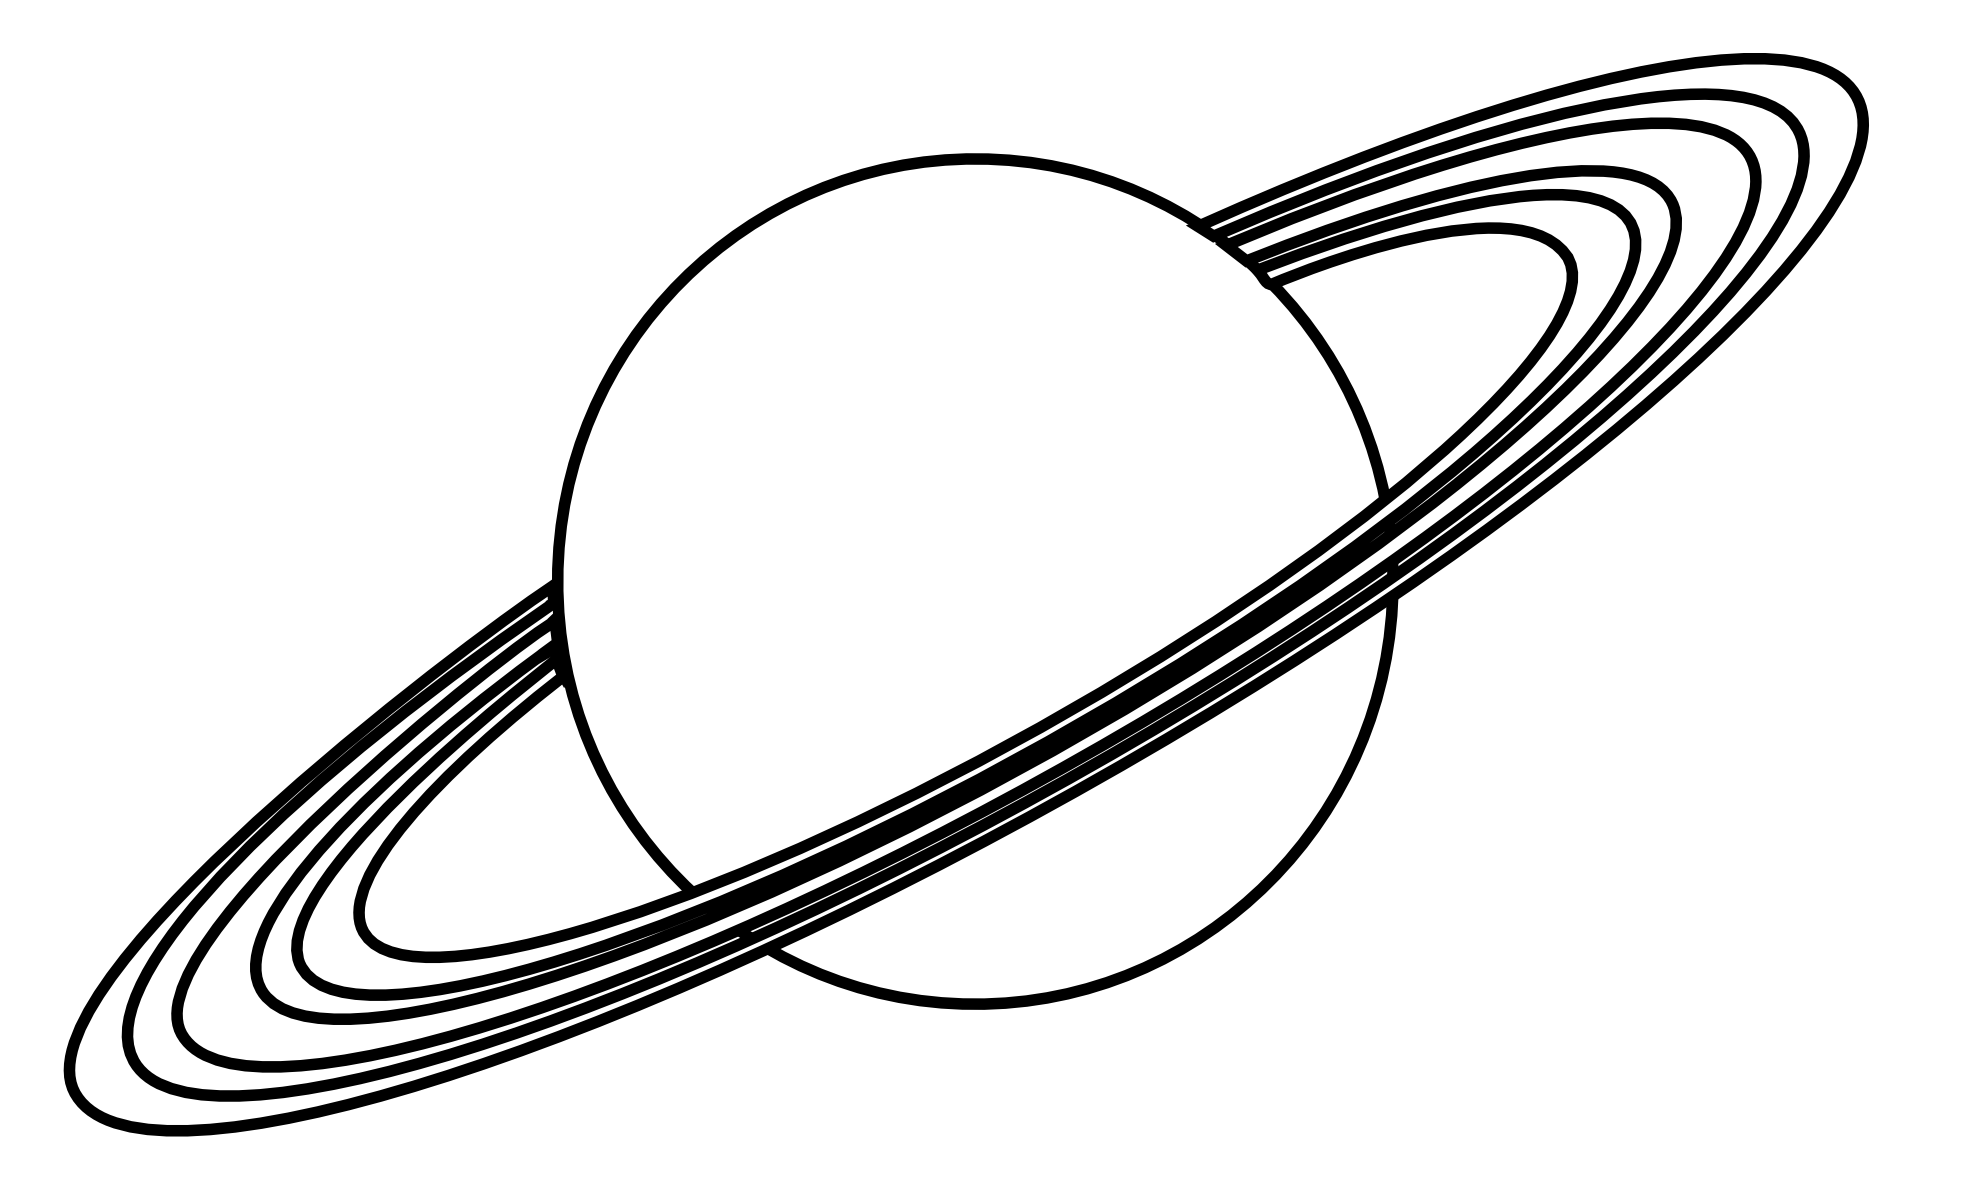 Planet clipart individual.  collection of with